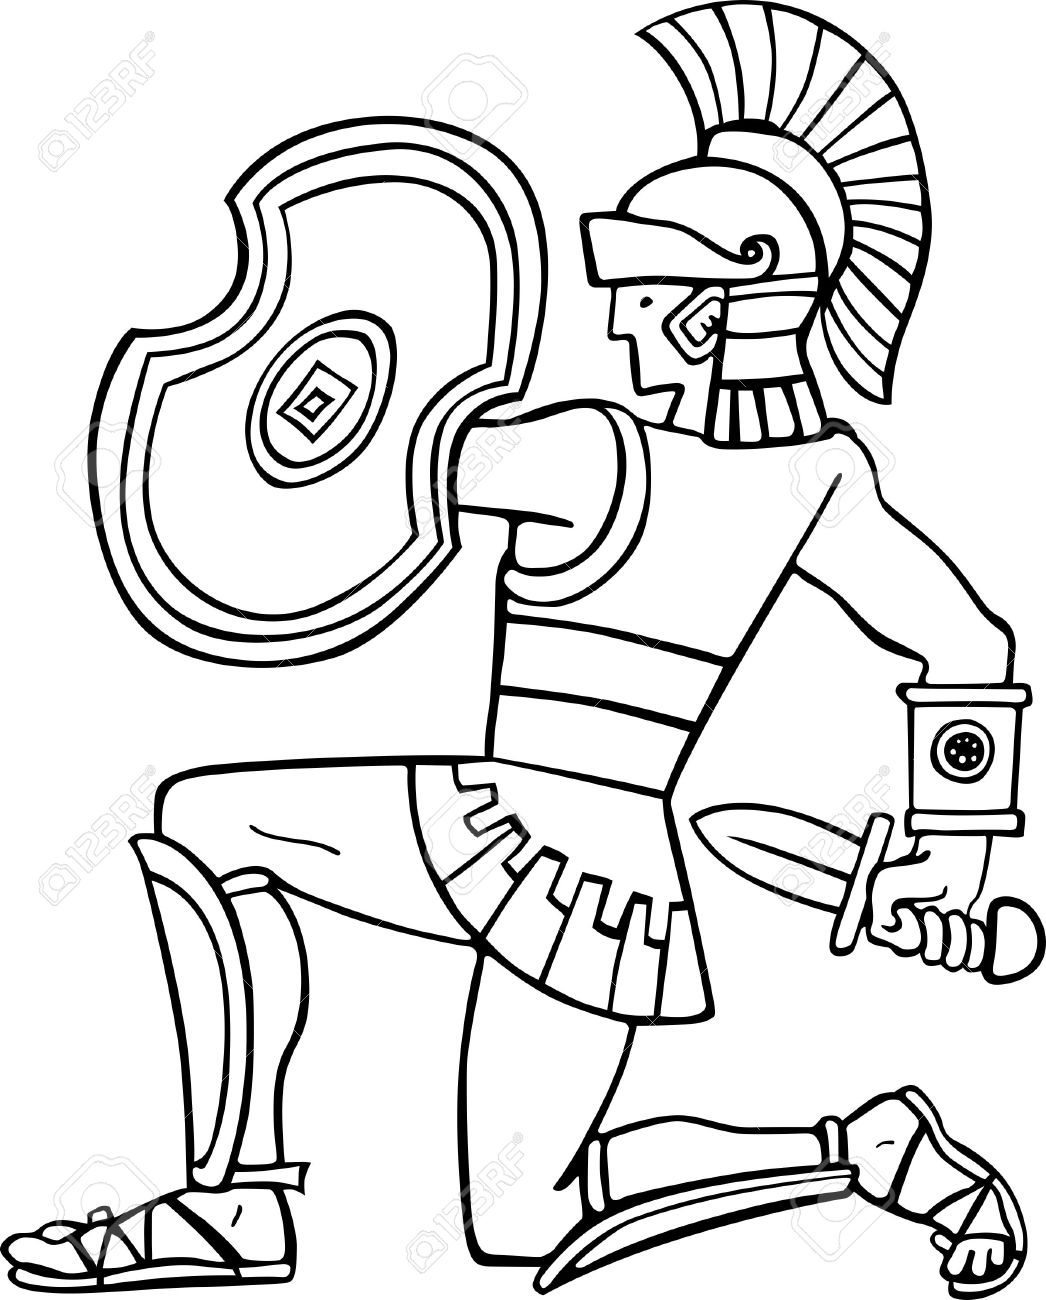 1046x1300 Energy Spartan Coloring Pages Trend Top Design